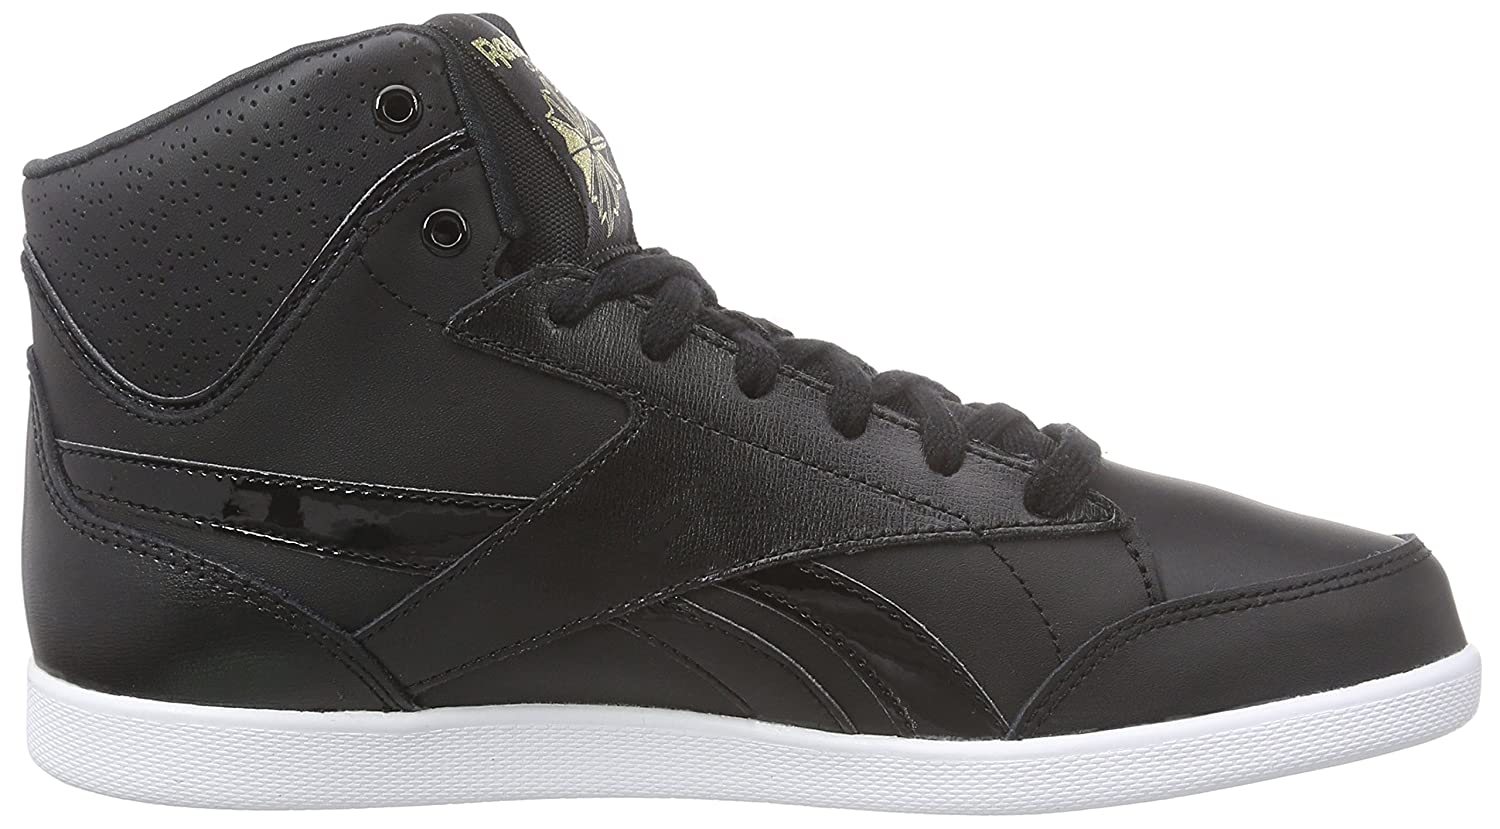 Reebok Women's Fabulista Mid Night Out High-Top Trainers Black Size: 2.5:  Amazon.co.uk: Shoes & Bags